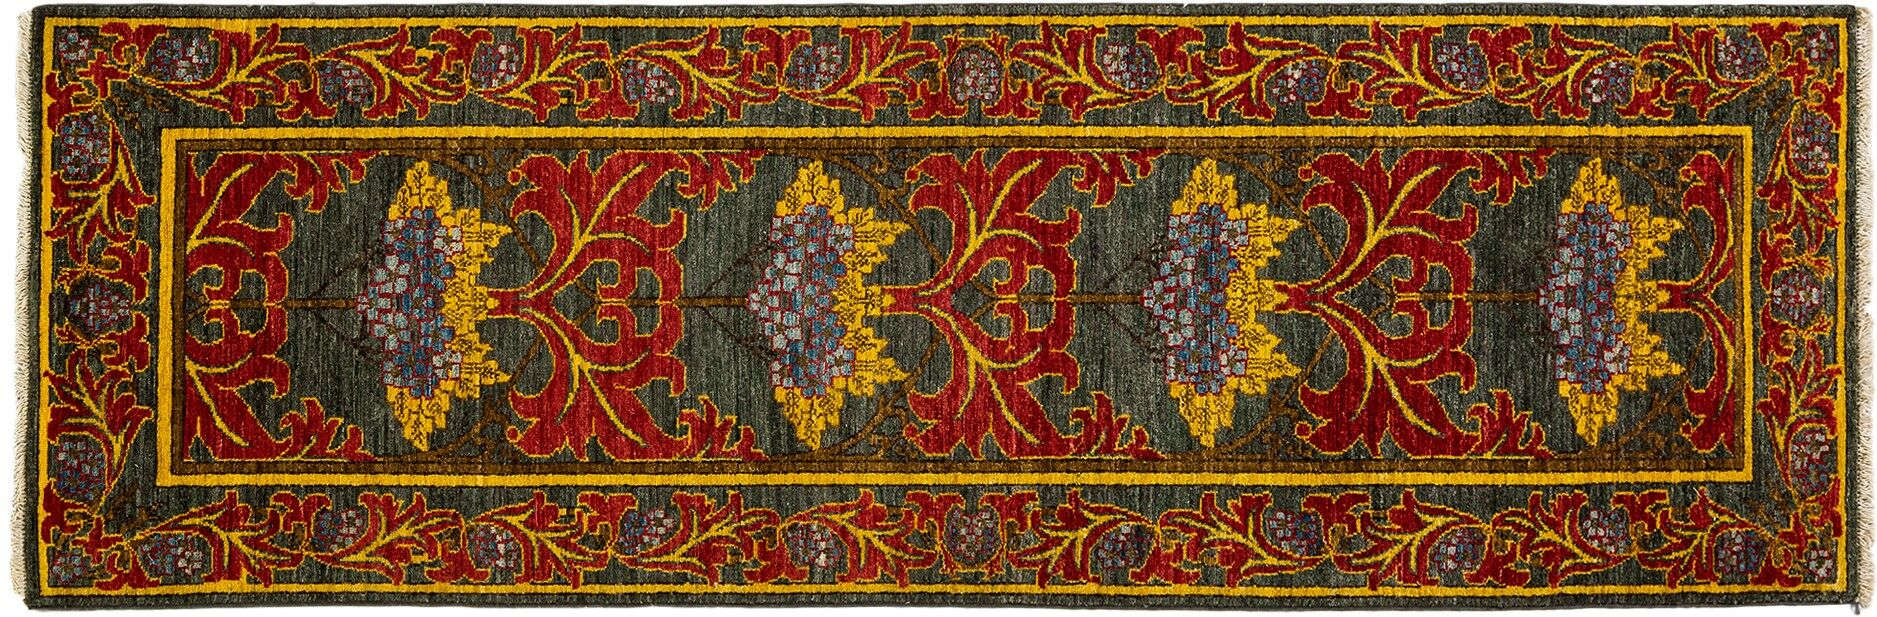 One-of-a-Kind Arts and Crafts Hand-Knotted Gray/Red Area Rug